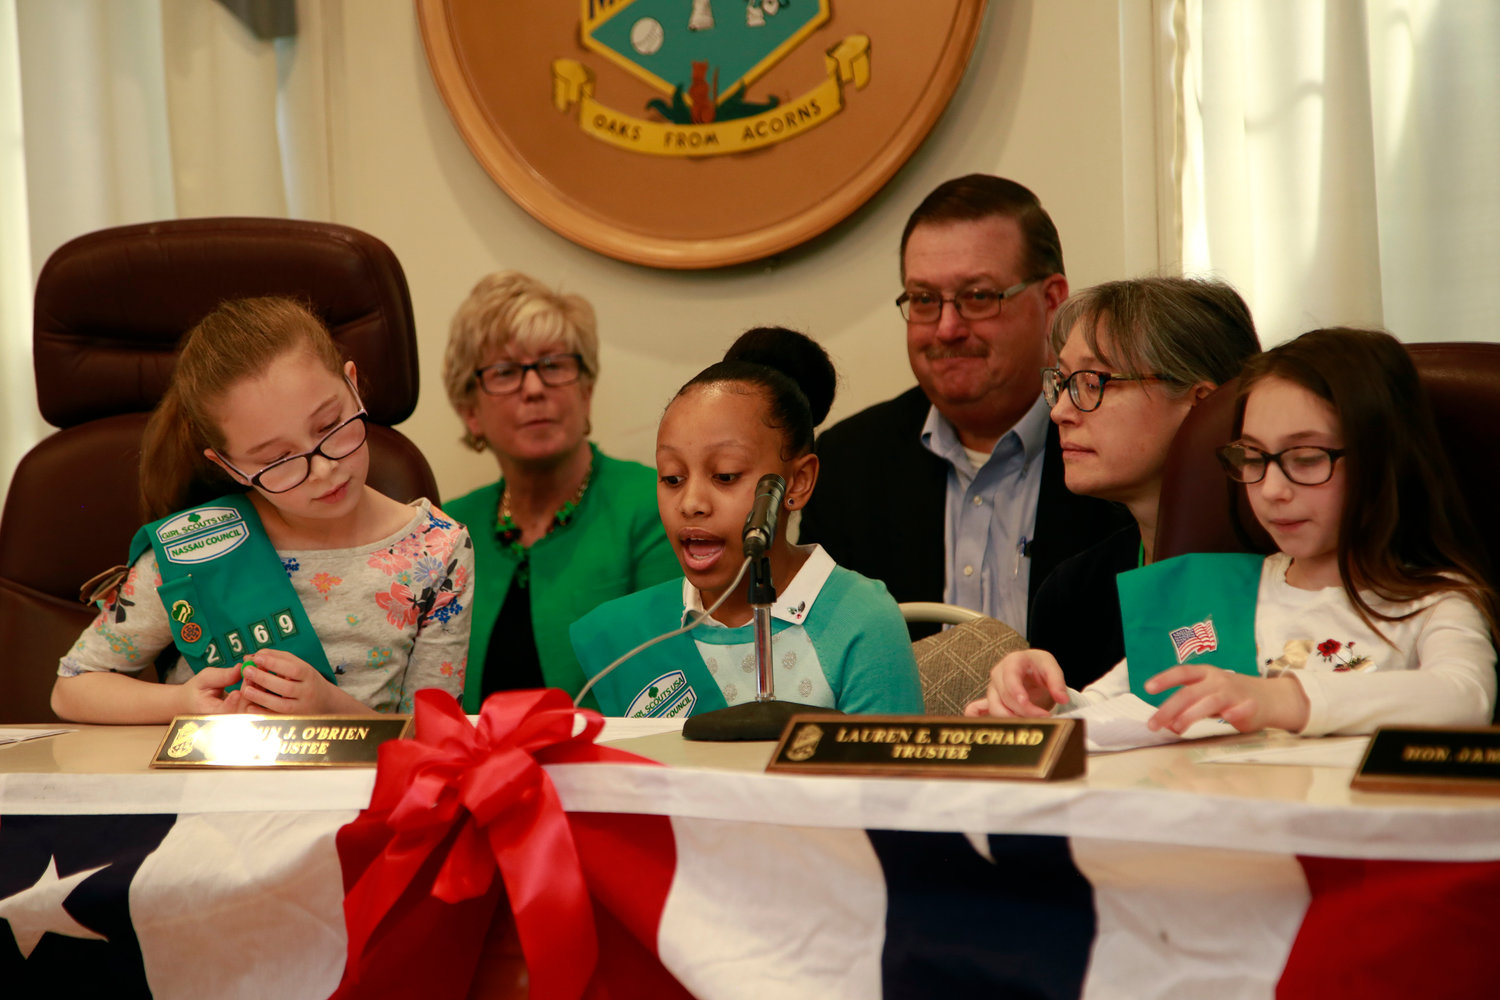 Angelina Dalmazio, left, sat next to Troop 2569 Leader Penny Jacobus.